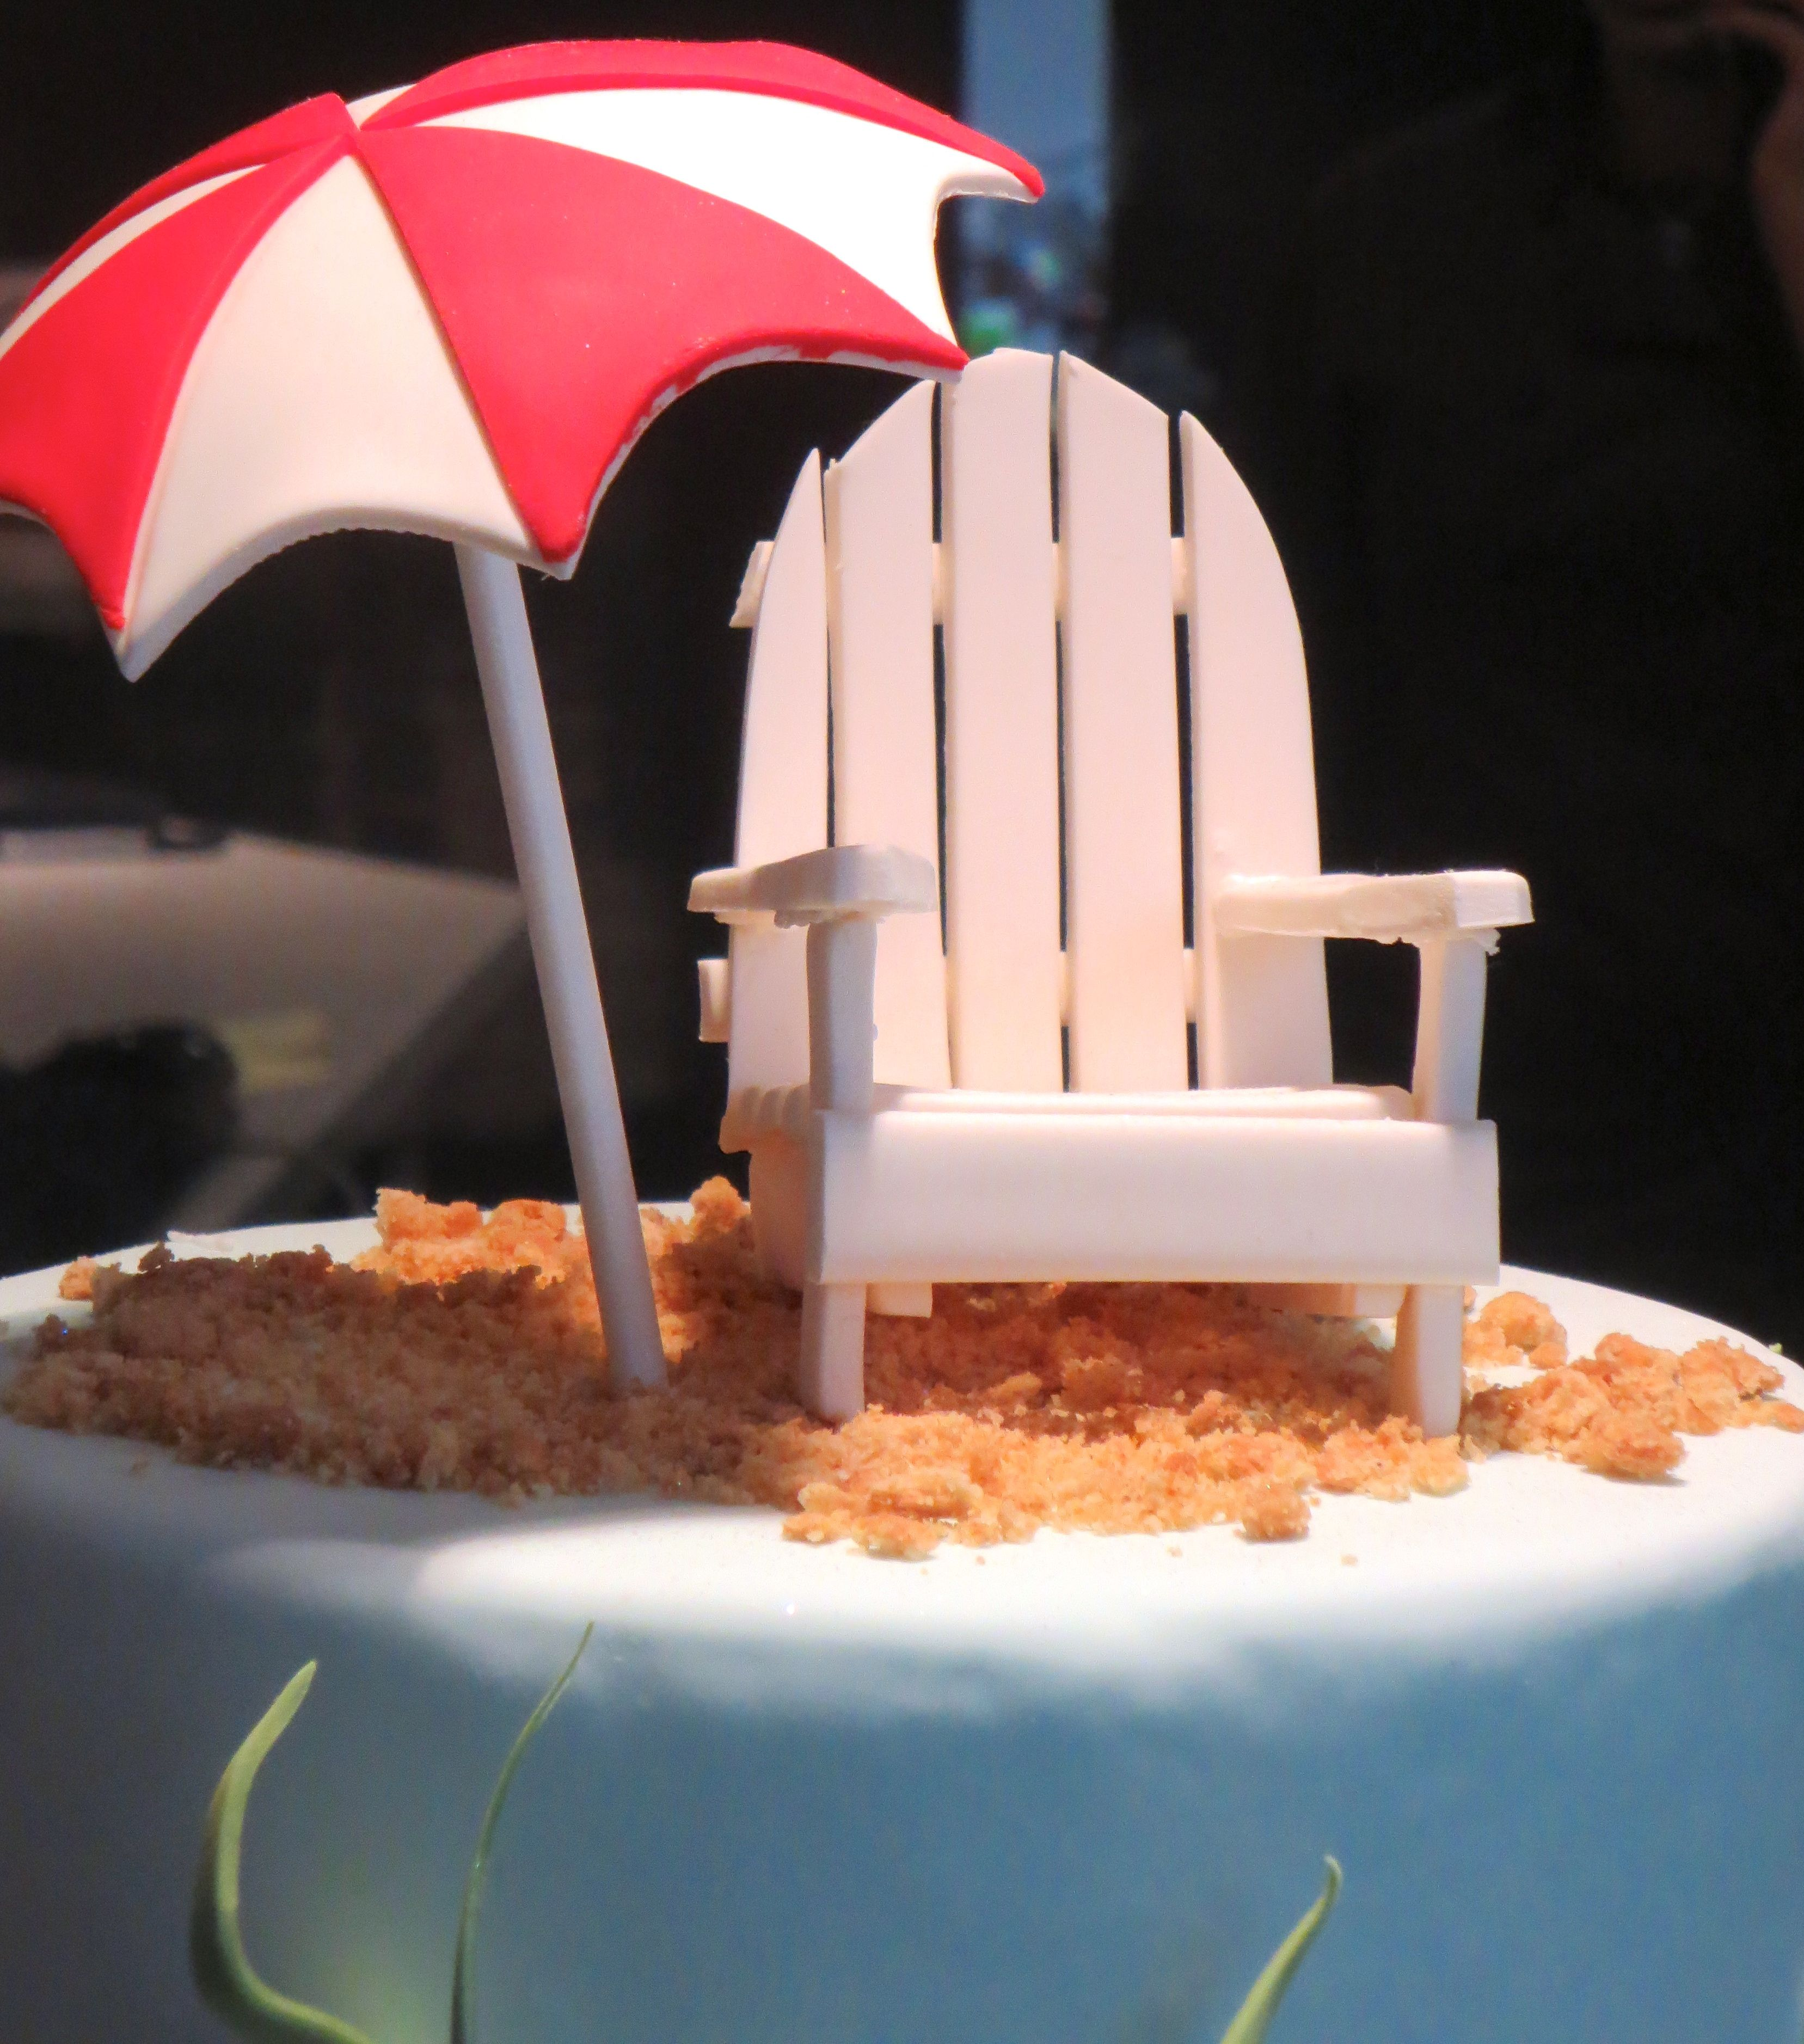 Quick Tutorial On How To Make Gumpaste Umbrella All Things Baking